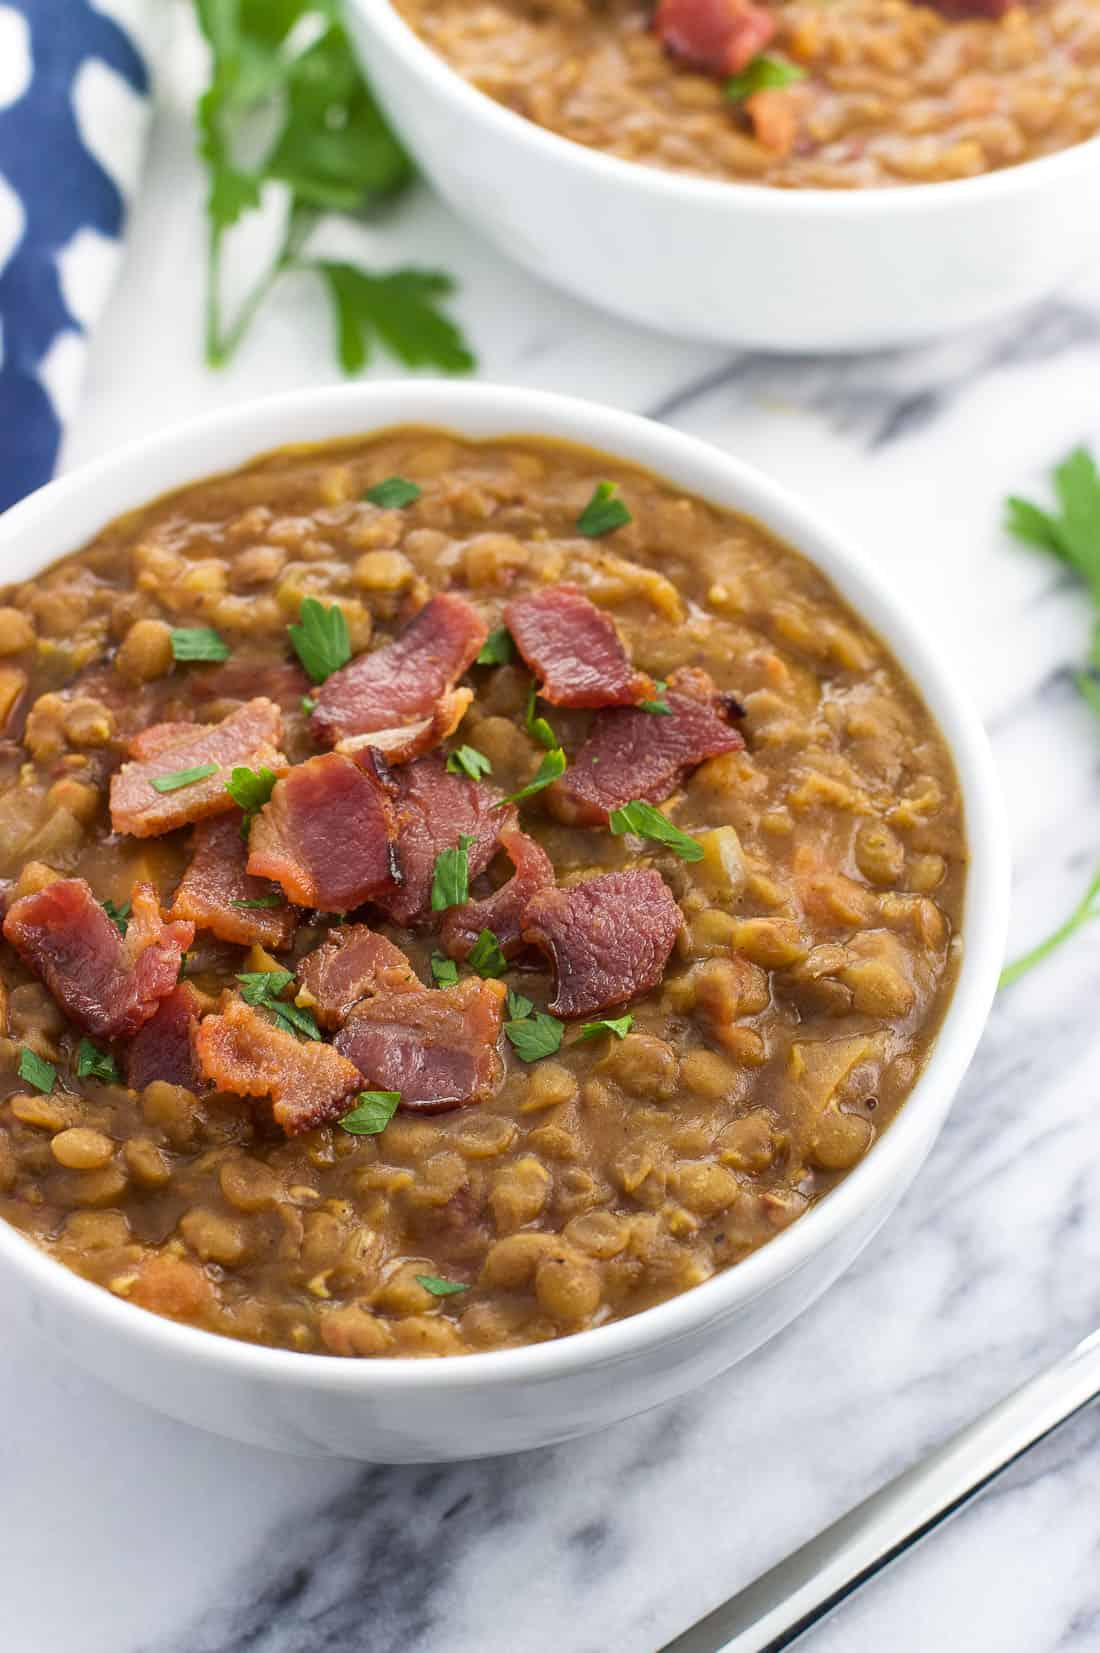 A bowl of lentil soup topped with crumbled bacon